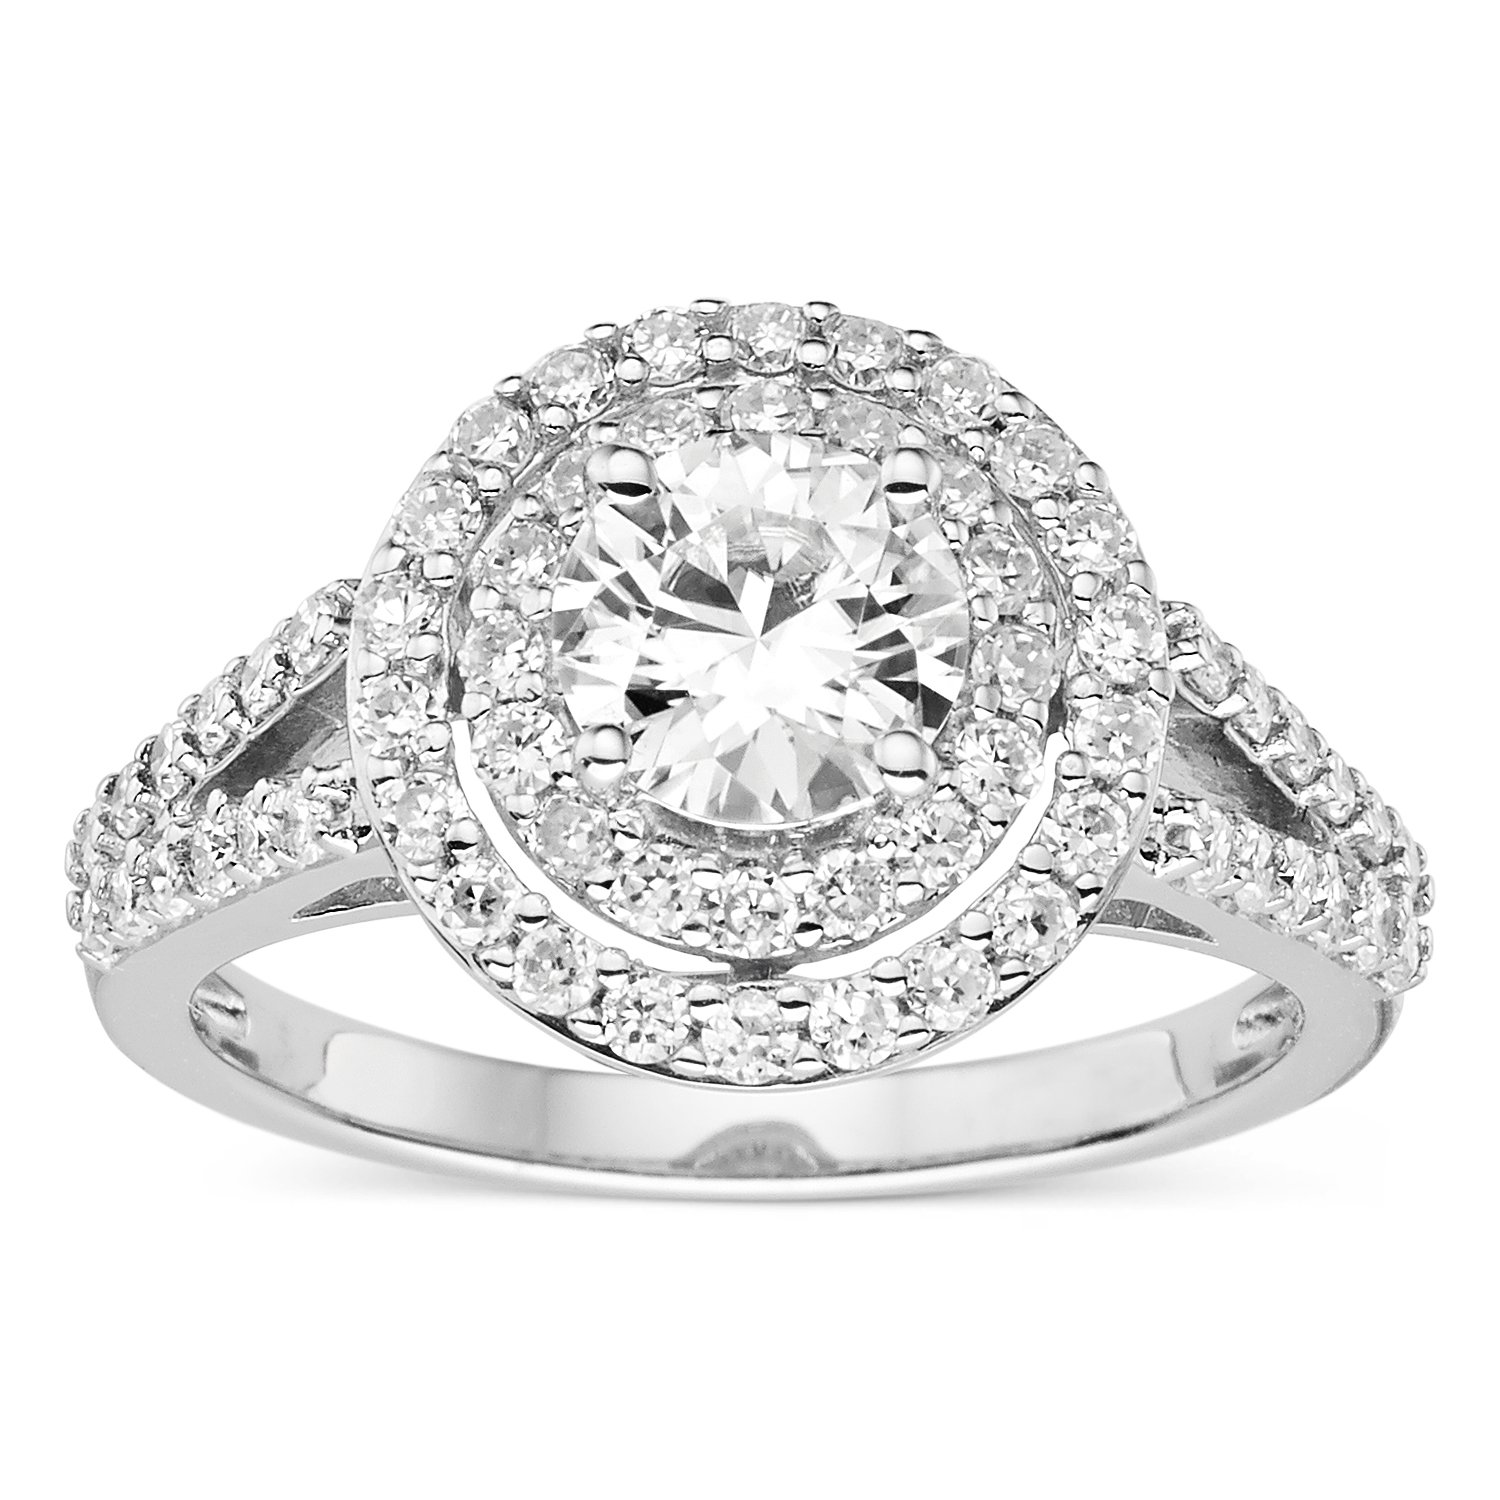 Forever Classic Round Cut 6.0mm Moissanite Halo Ring-size 6, 1.42cttw DEW By Charles & Colvard